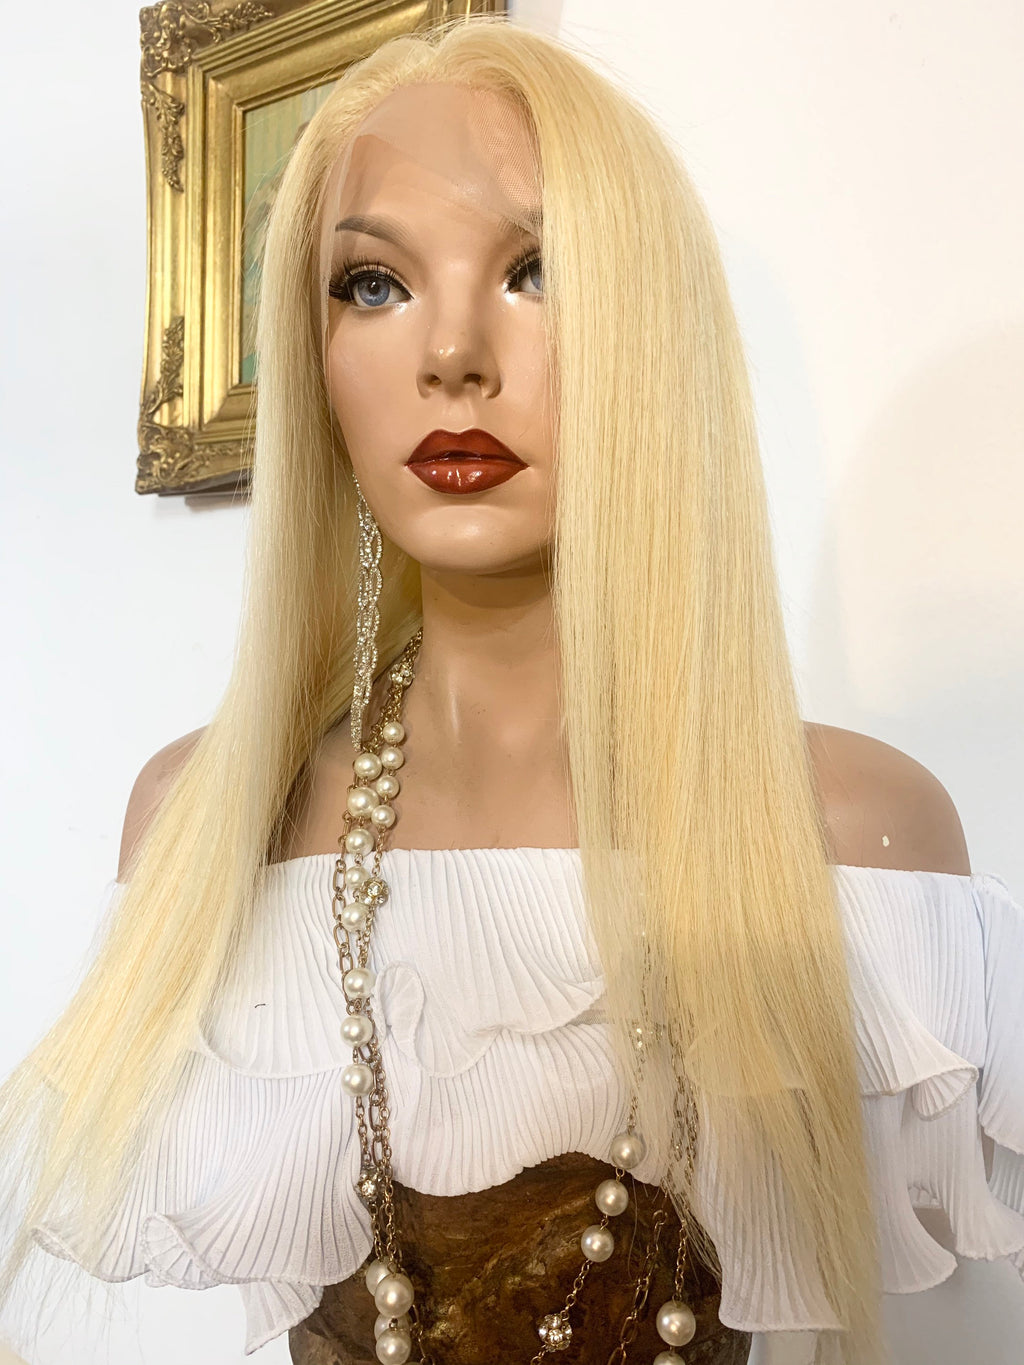 HUMAN HAIR Full lace Wig,  Natural Blonde 613 Virgin hair, 18 Inches, Full multi parting Undetected Lace